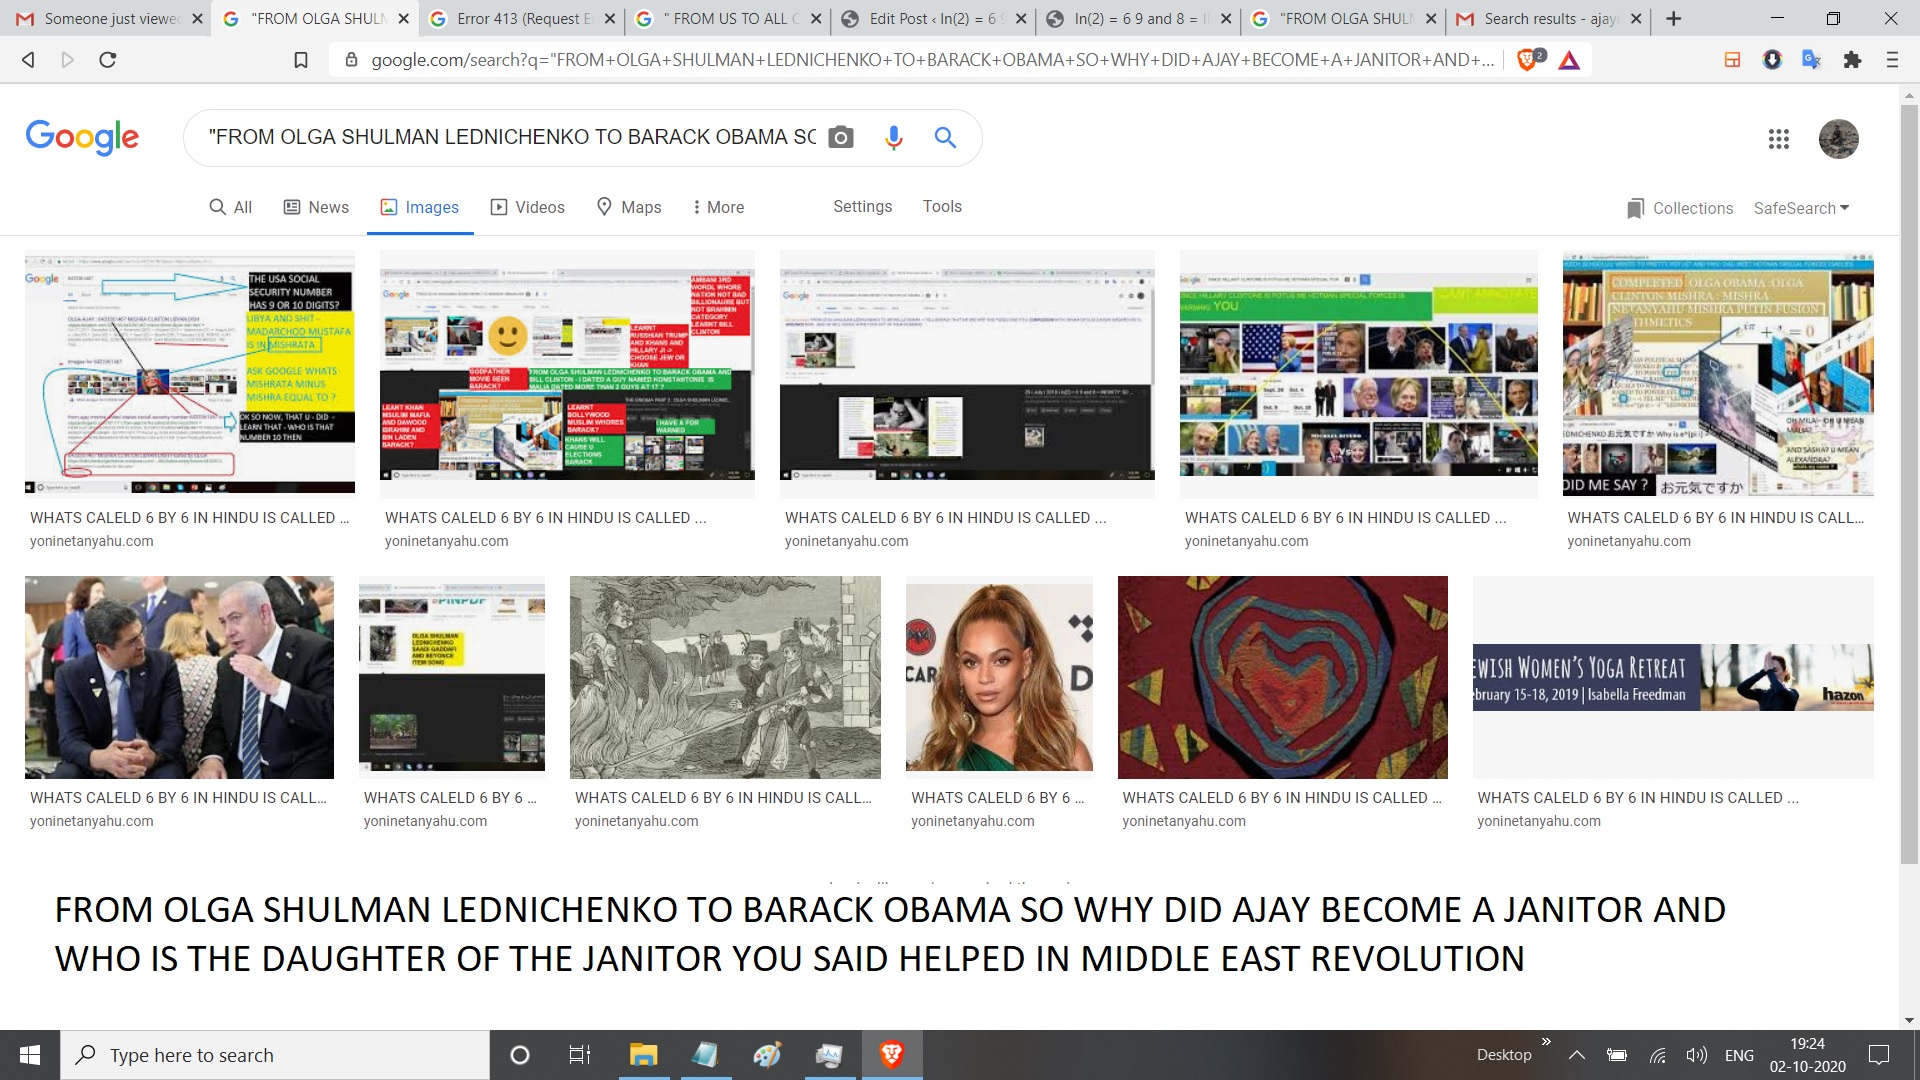 FROM OLGA SHULMAN LEDNICHENKO TO BARACK OBAMA SO WHY DID AJAY BECOME A JANITOR AND WHO IS THE DAUGHTER OF THE JANITOR YOU SAID HELPED IN MIDDLE EAST REVOLUTION